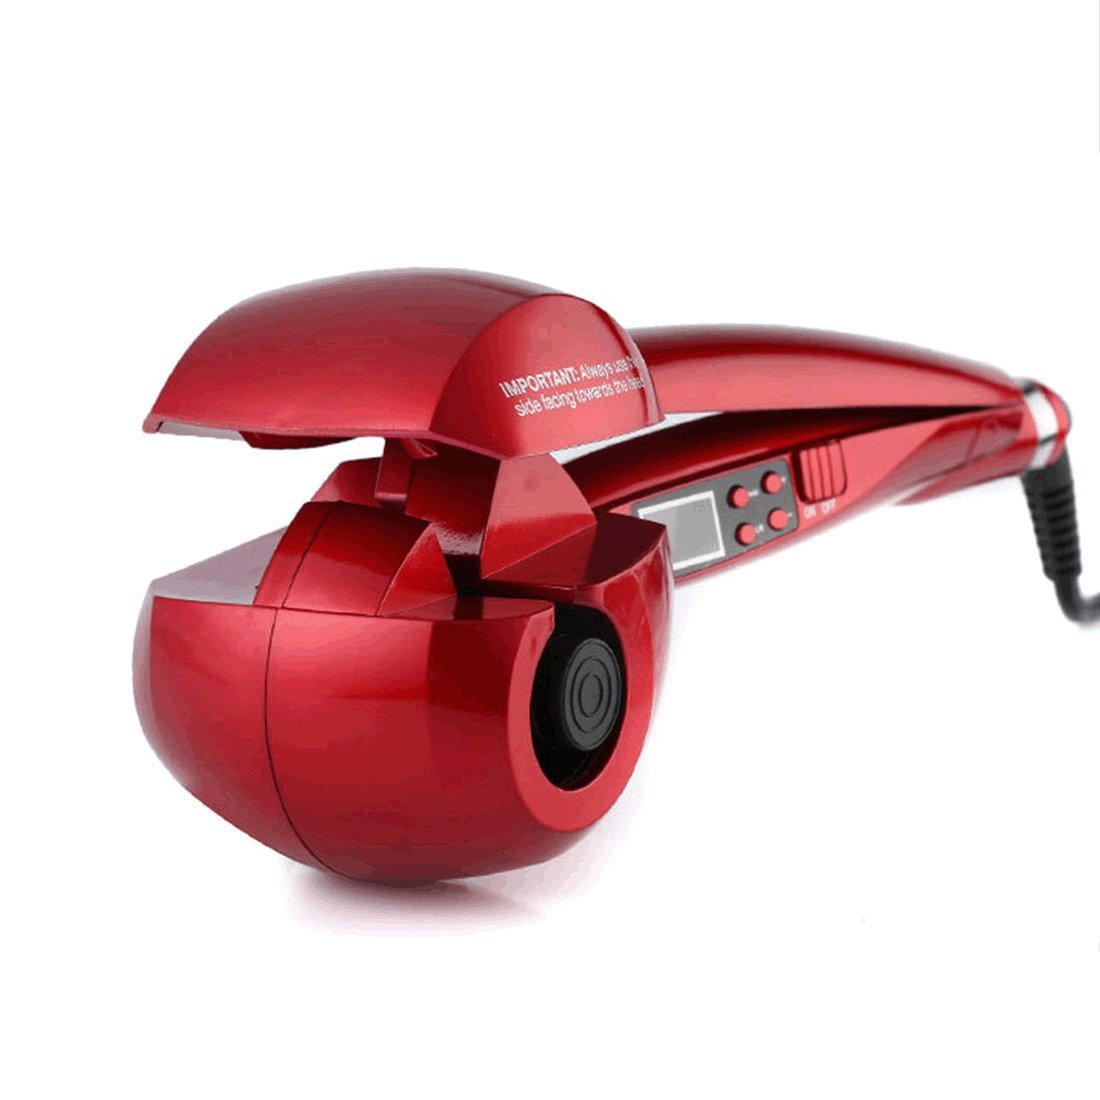 LCD Professional Automatic Wave Hair Curling Curler Roller Iron Wand Machine Set Accessories (Red) Zhi Jin